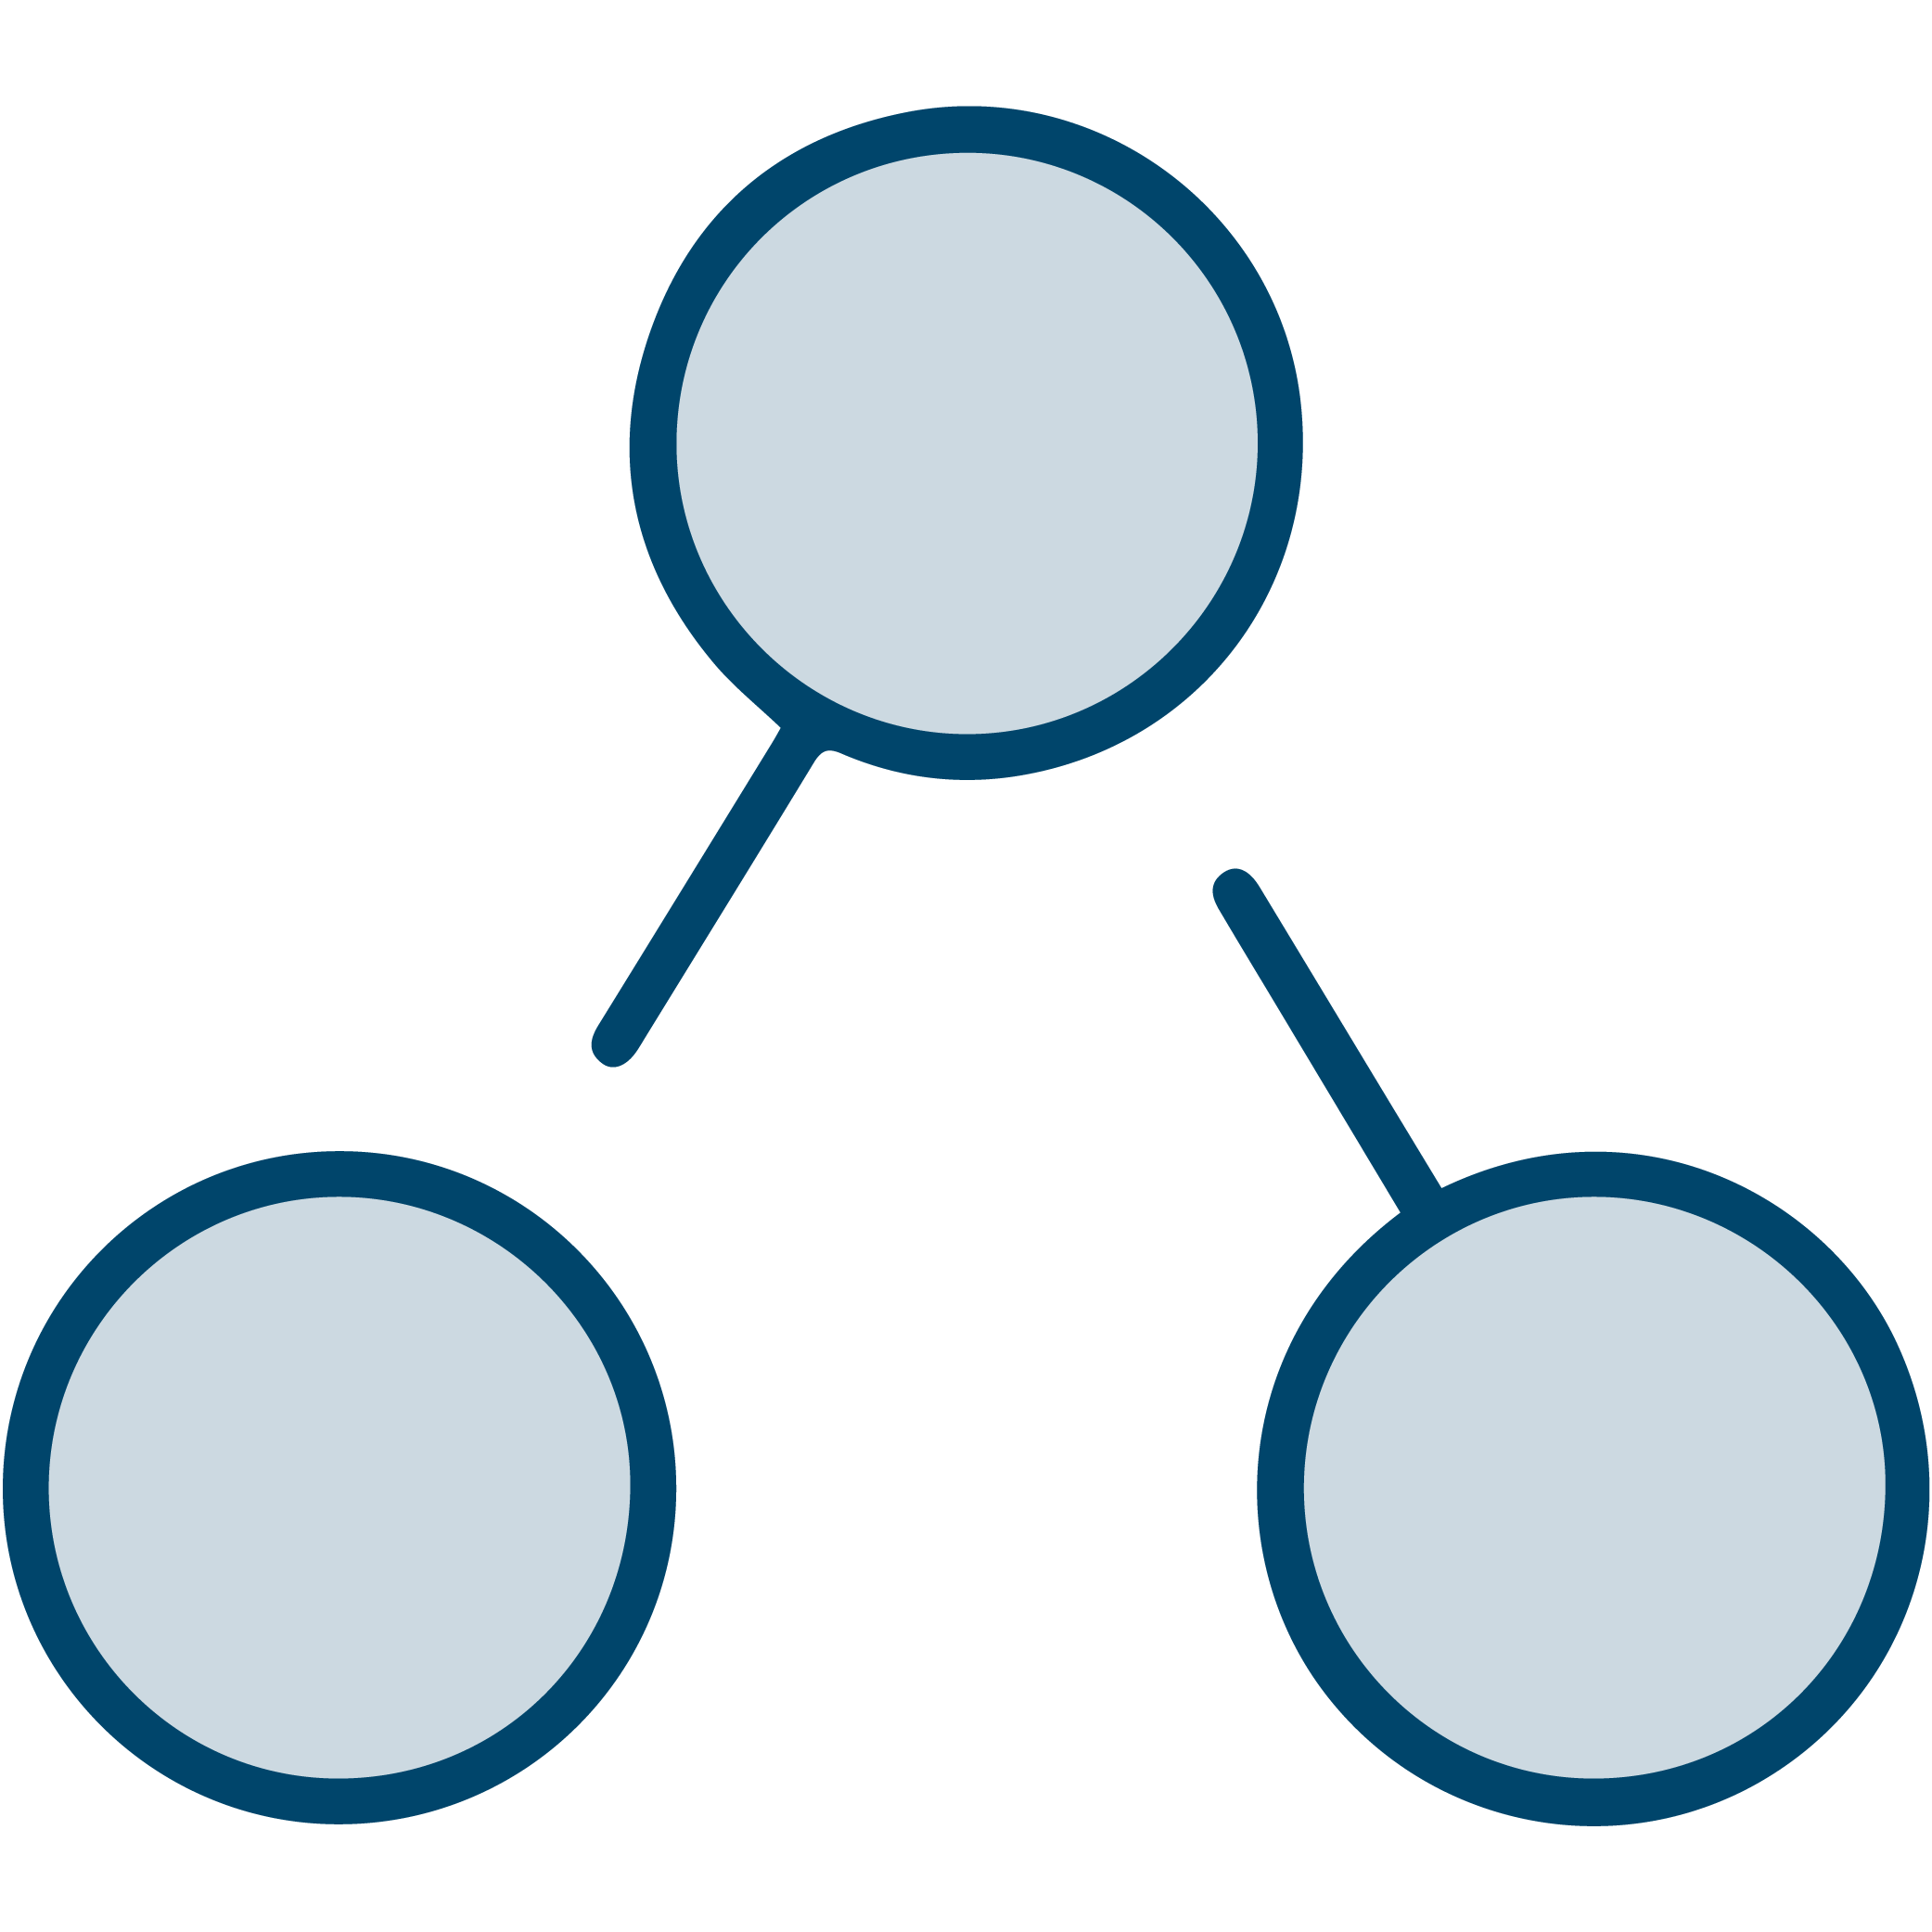 Icons Decision Decision-Making Tree Computer Social Loomio PNG Image